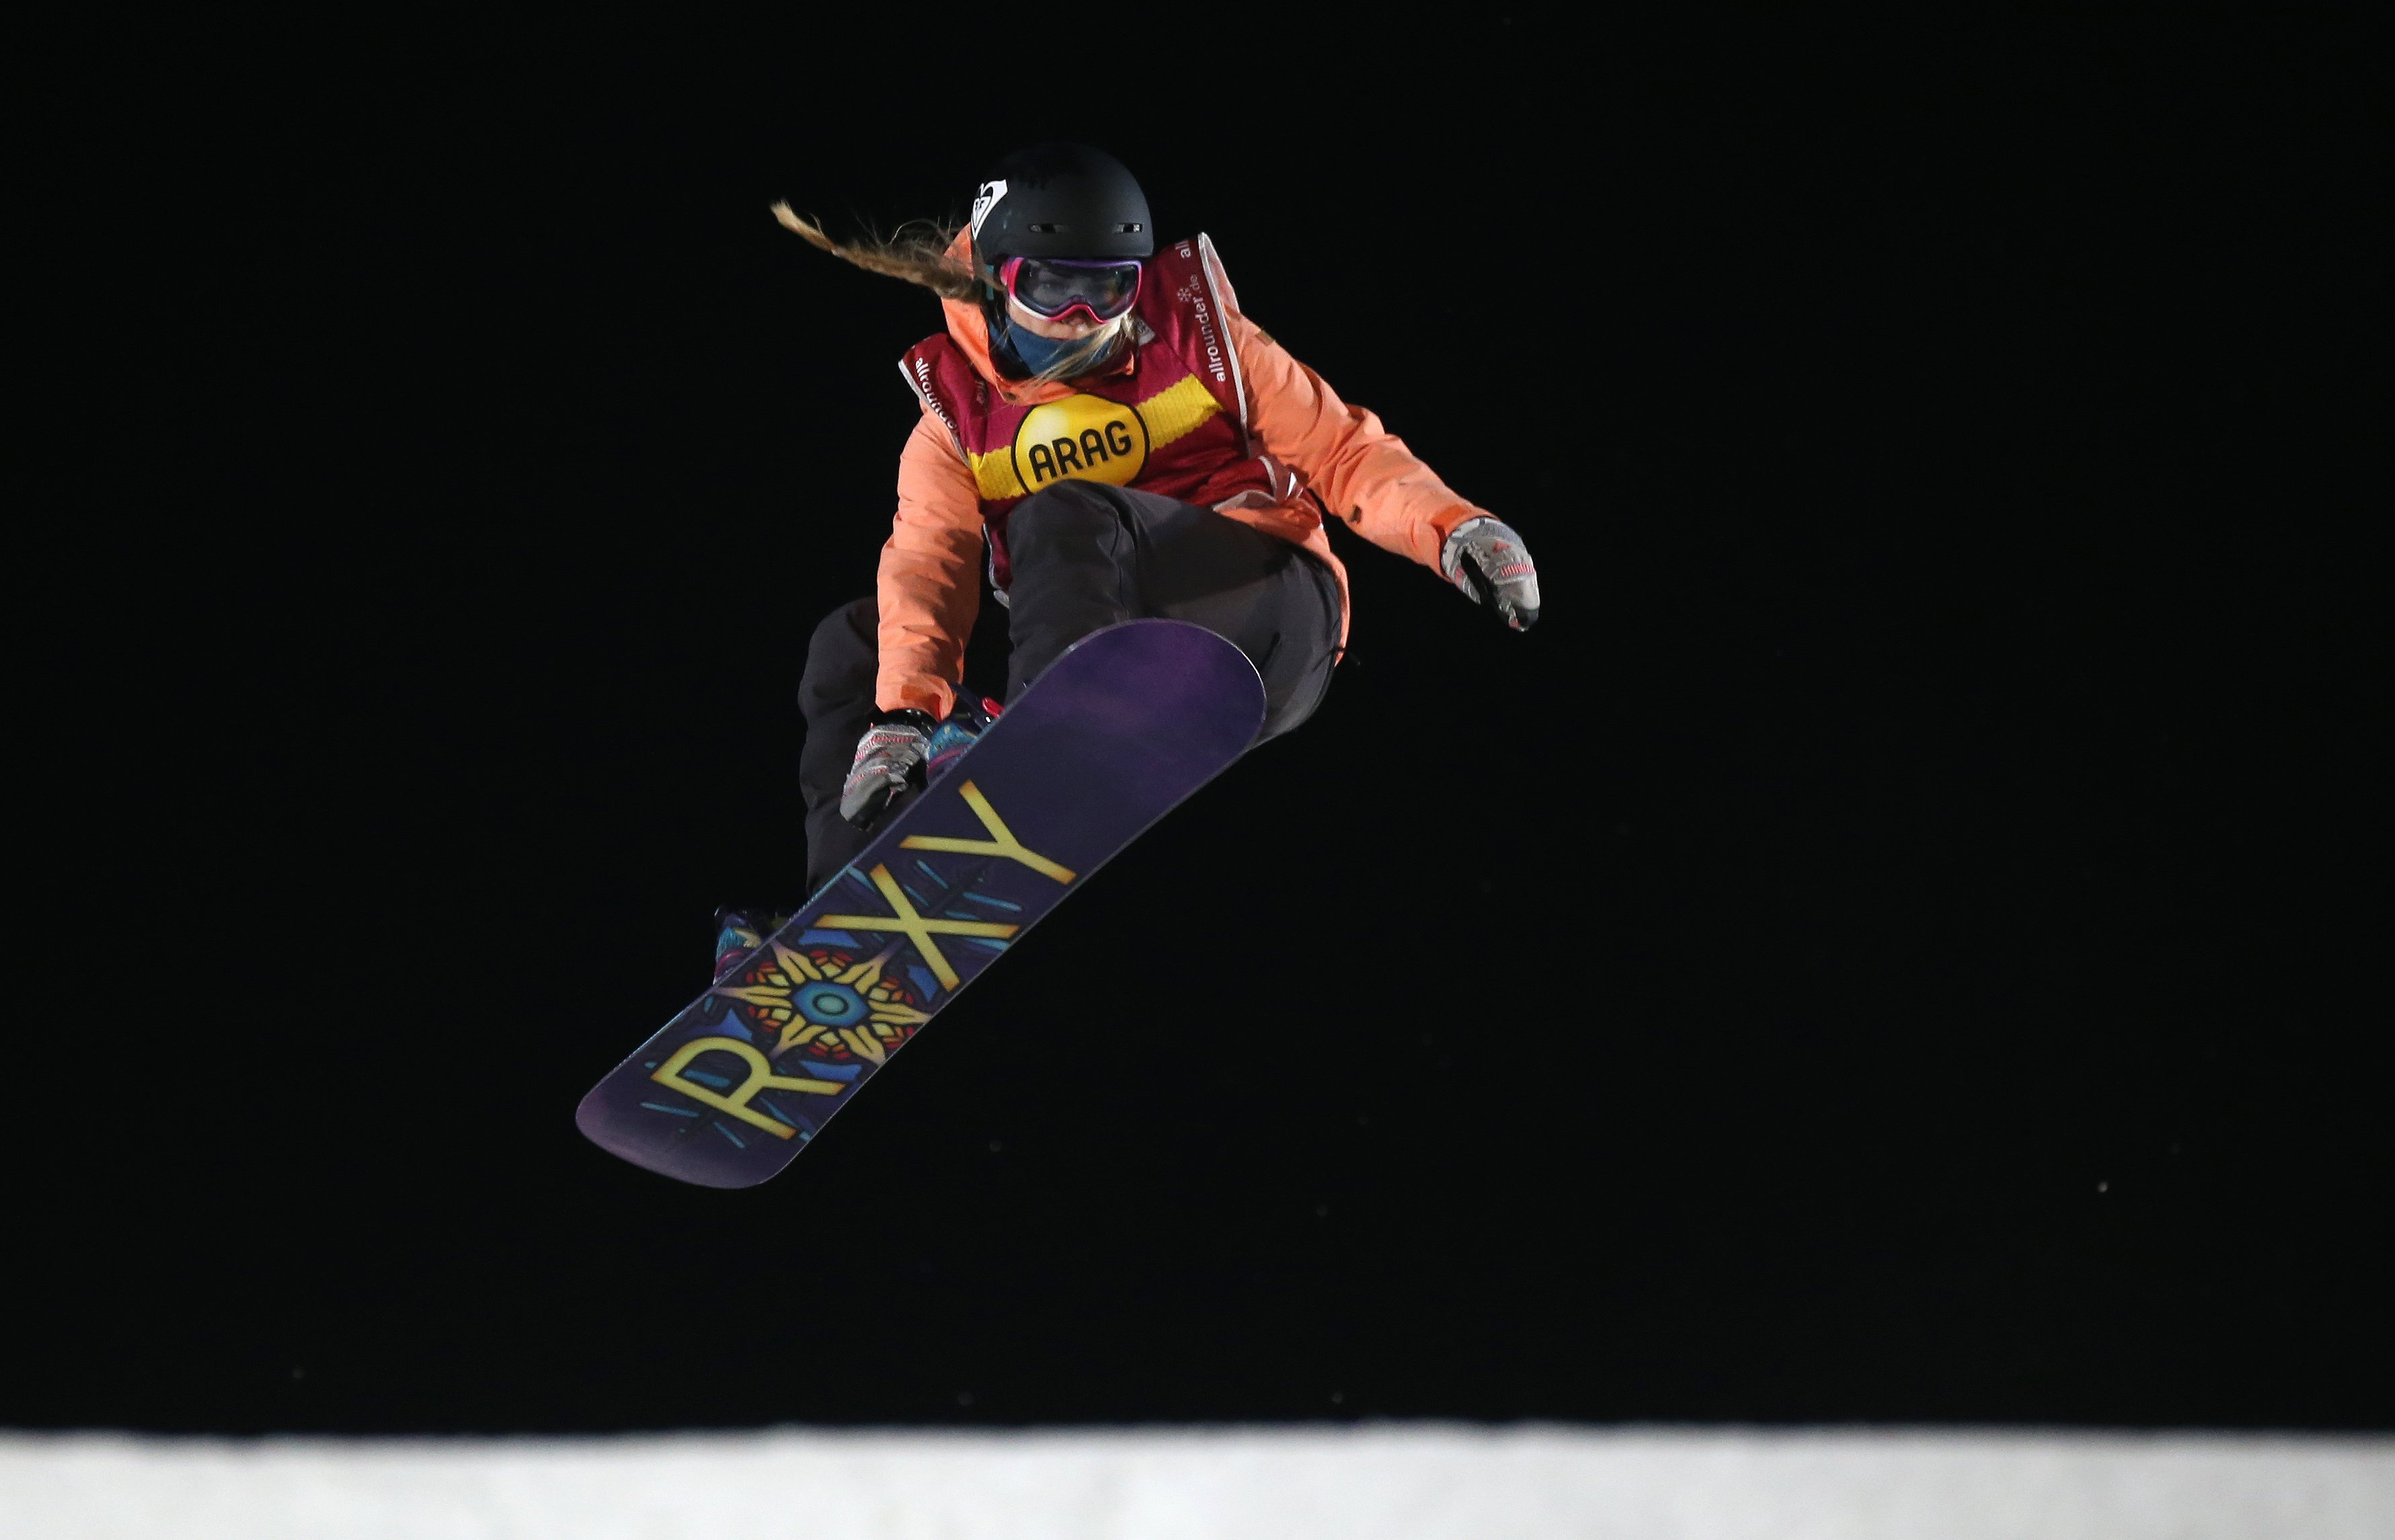 British snowboarding sensation Katie Ormerod claims another World Cup podium place finishing second in the slopestyle